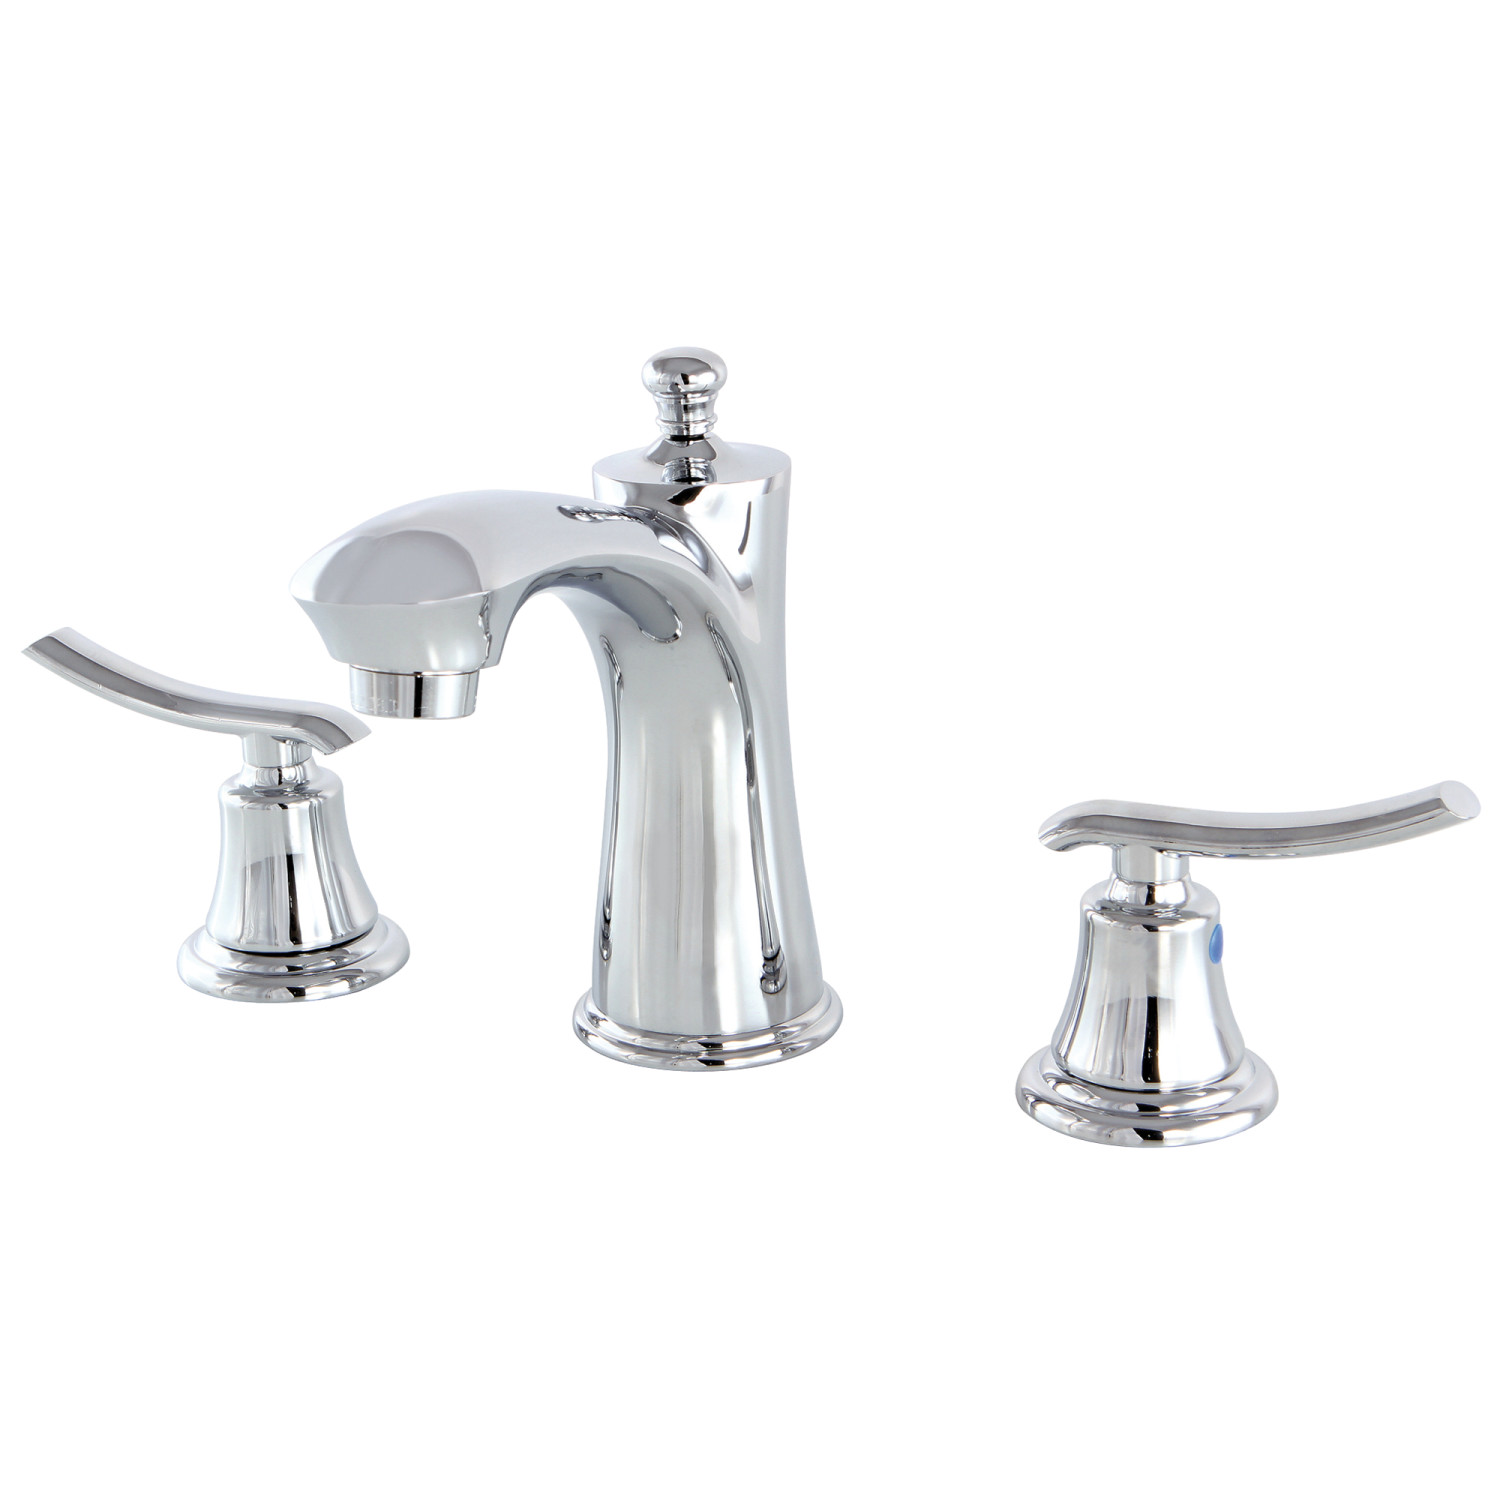 Traditional Two-Handle Three-Hole Deck Mounted Widespread Bathroom Faucet with Plastic Pop-Up in Polished Chrome with 3 Finish Options